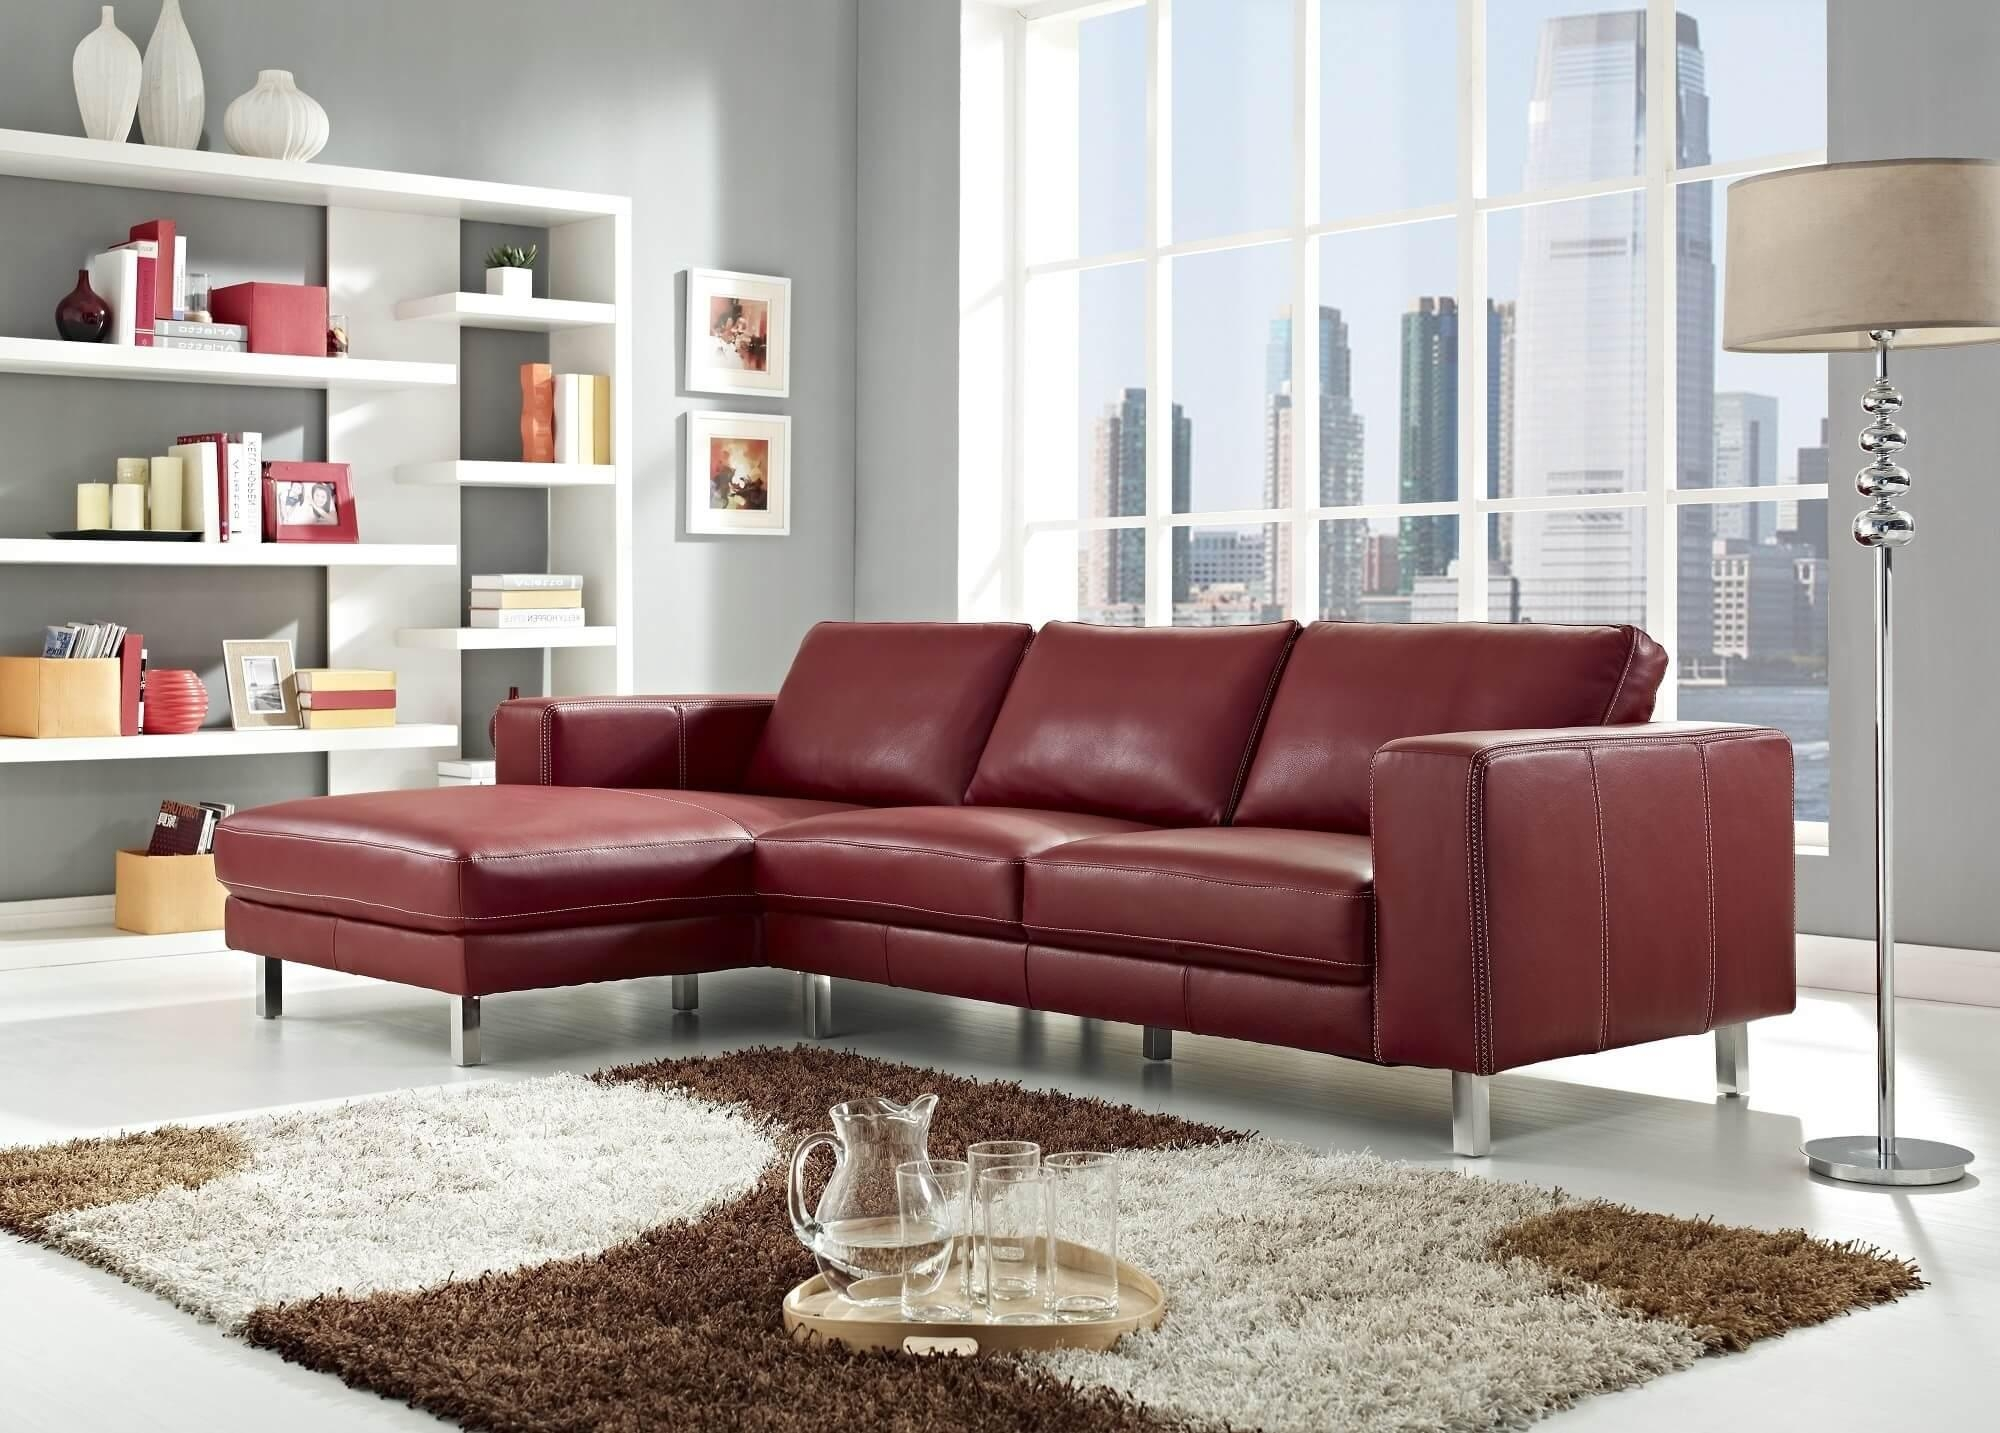 Sofas Center : Leather Sofas On Sale Sectional Fabric Furniture Inside Dark Red Leather Sofas (View 14 of 20)